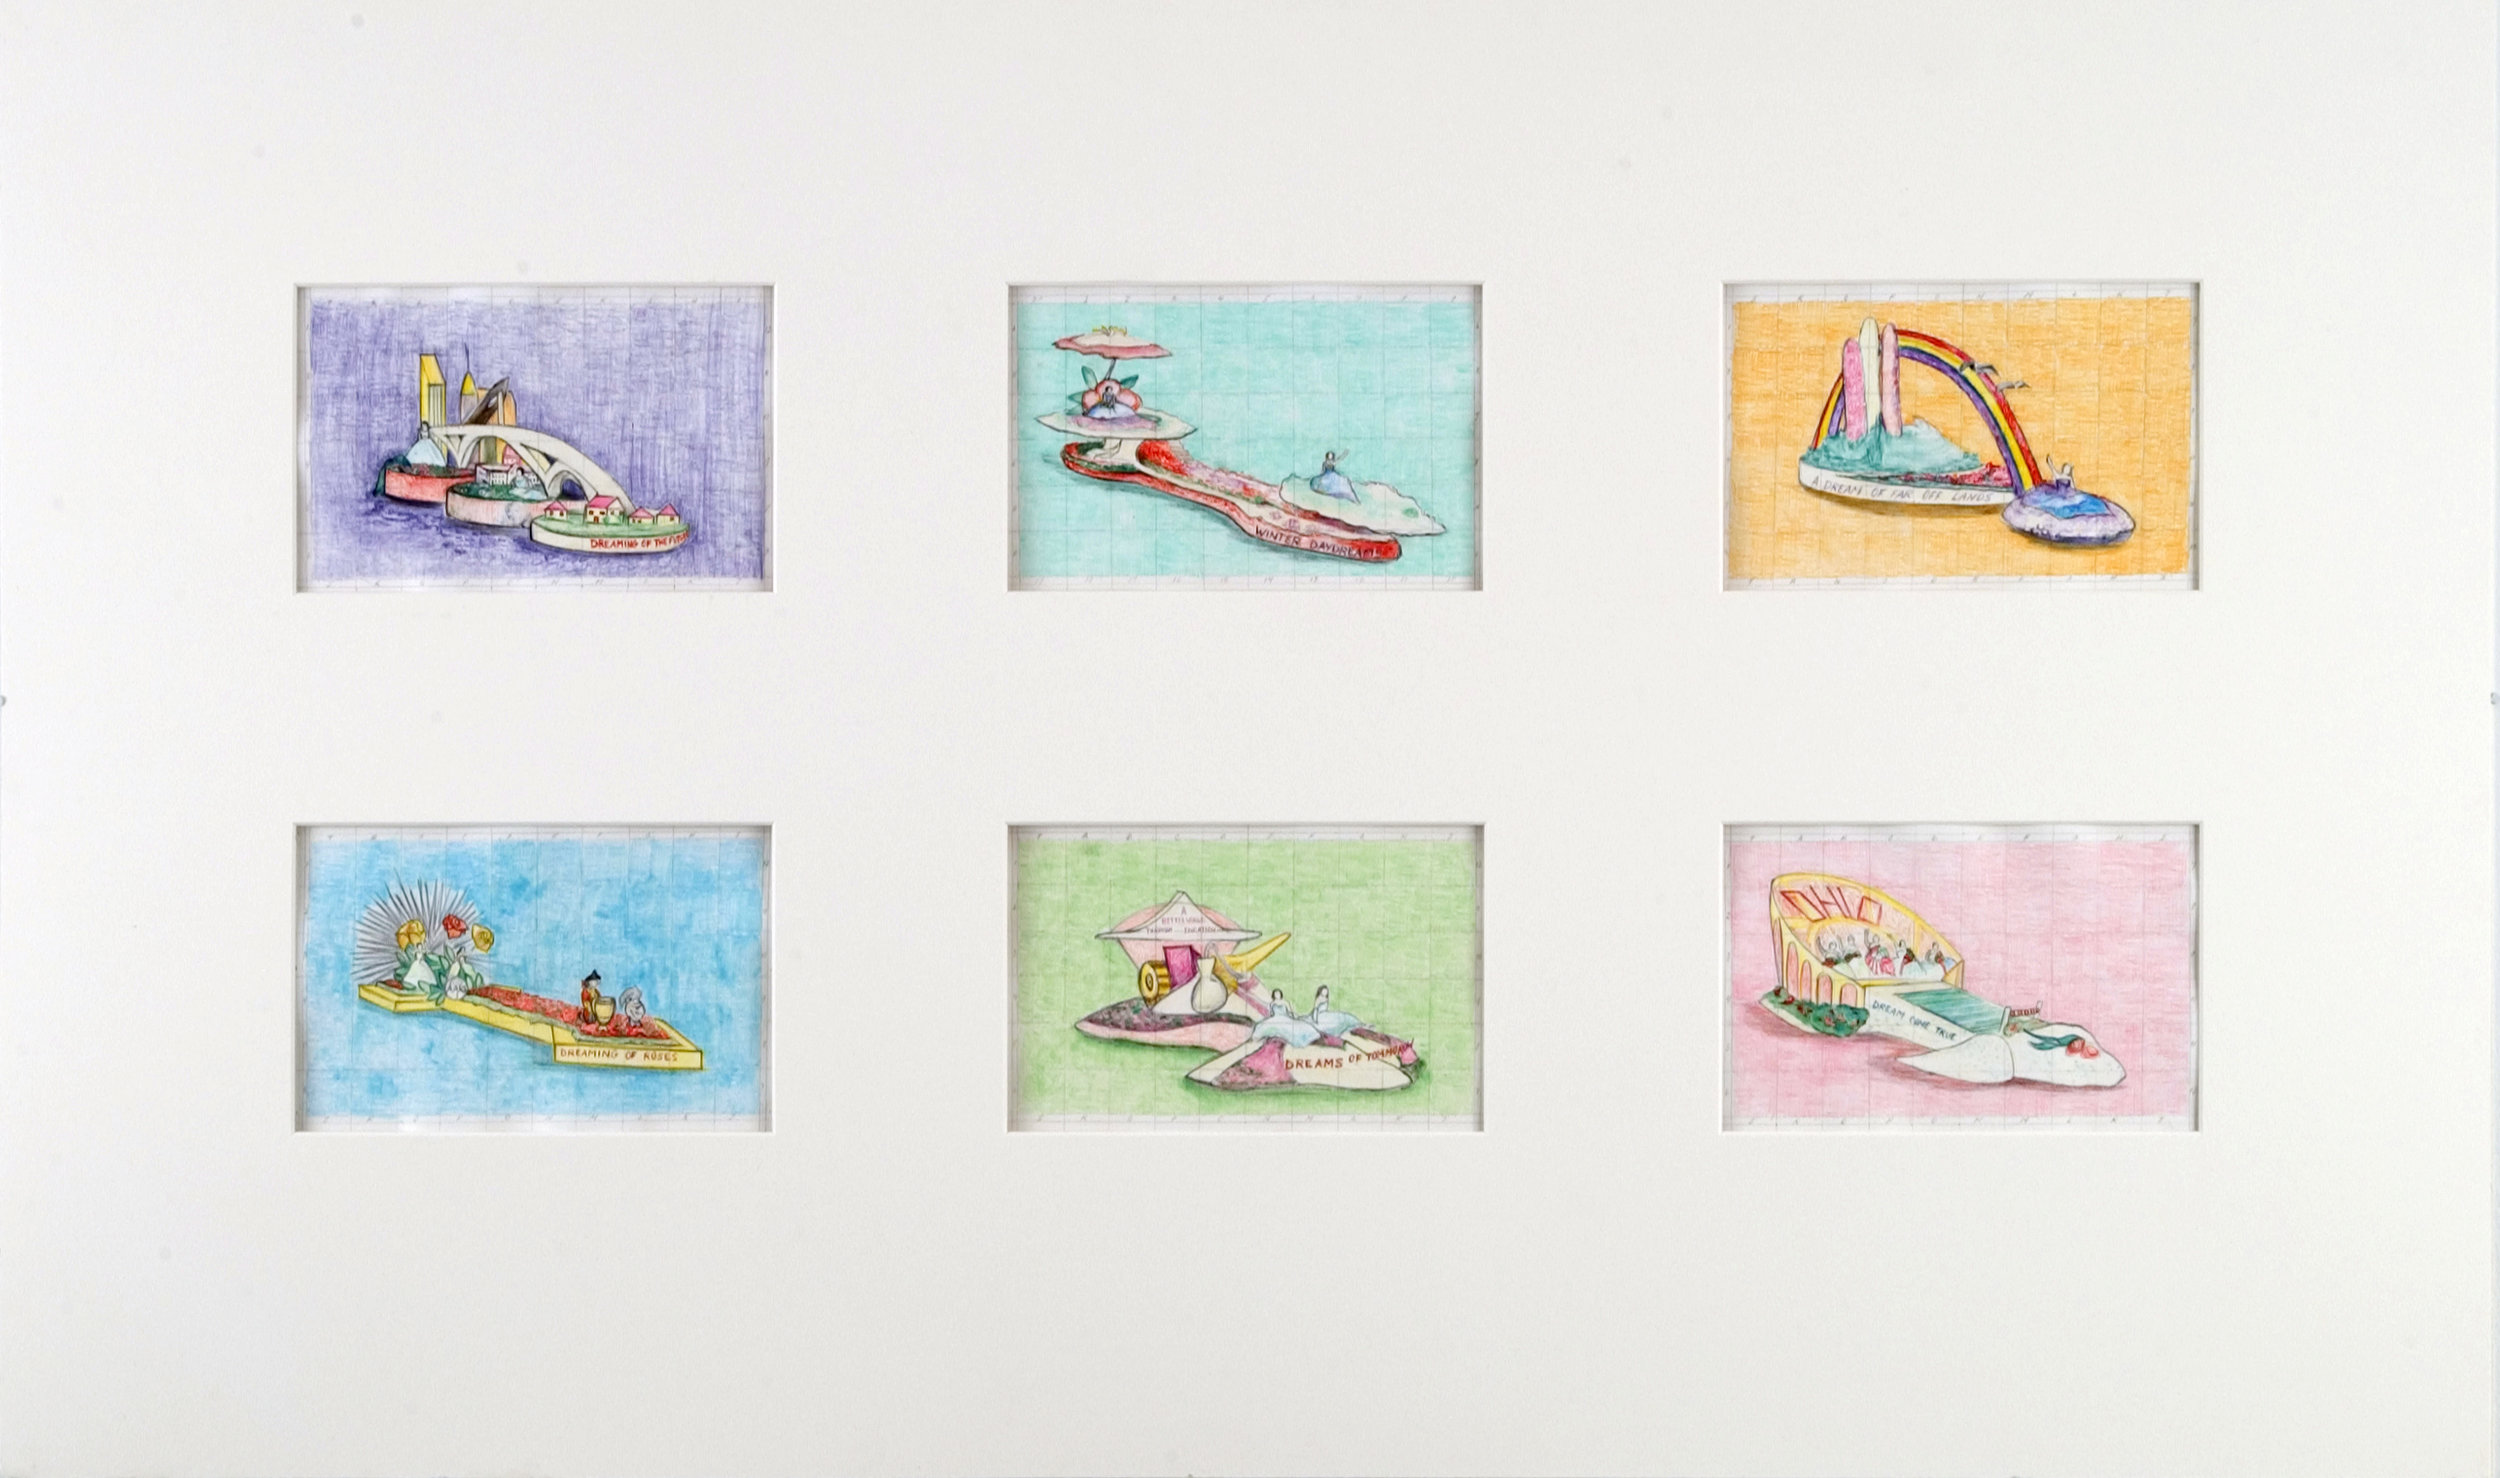 1/8 scale study for 6 parade float memorial murals, 2004 pencil on paper 65 x 108,5 cm - 25 5/8 x 42 3/4 inches